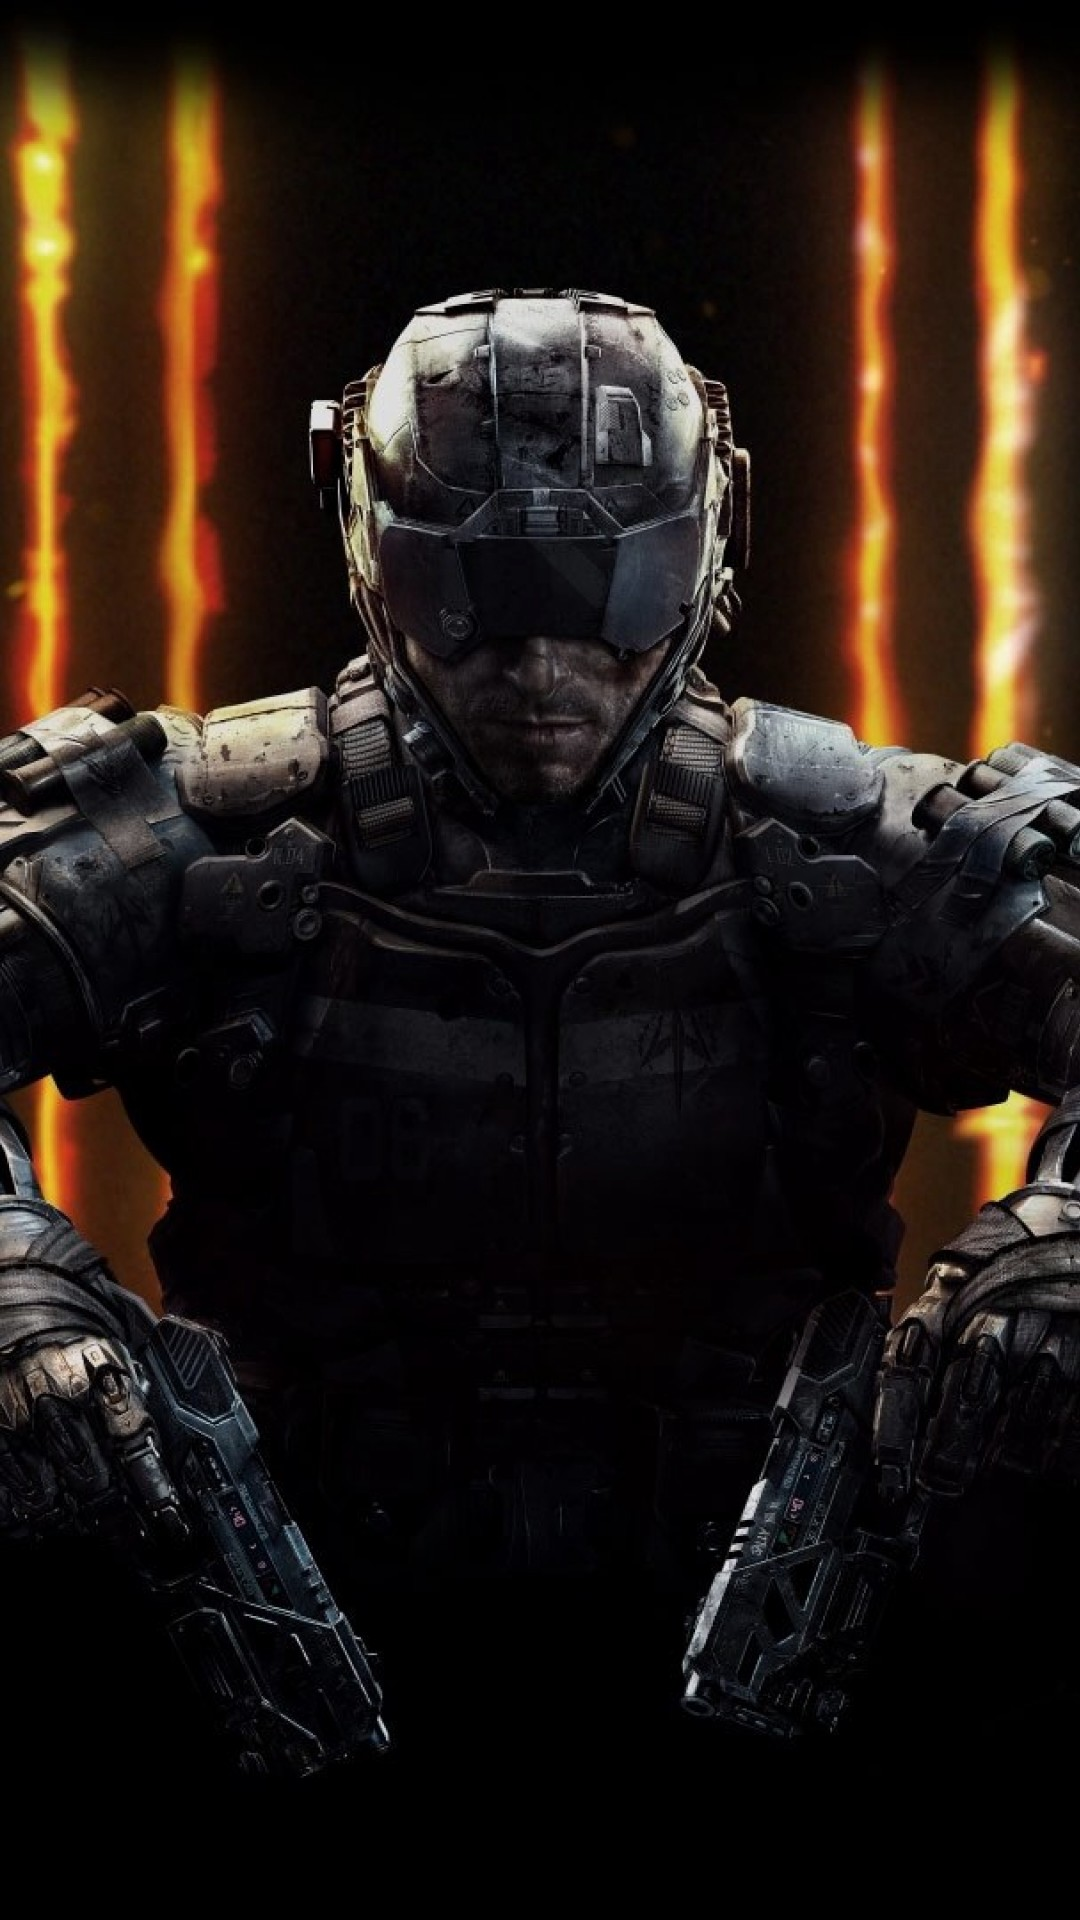 Call Of Duty Black Ops 3 Hd Wallpaper Iphone 6 6s Plus Hd